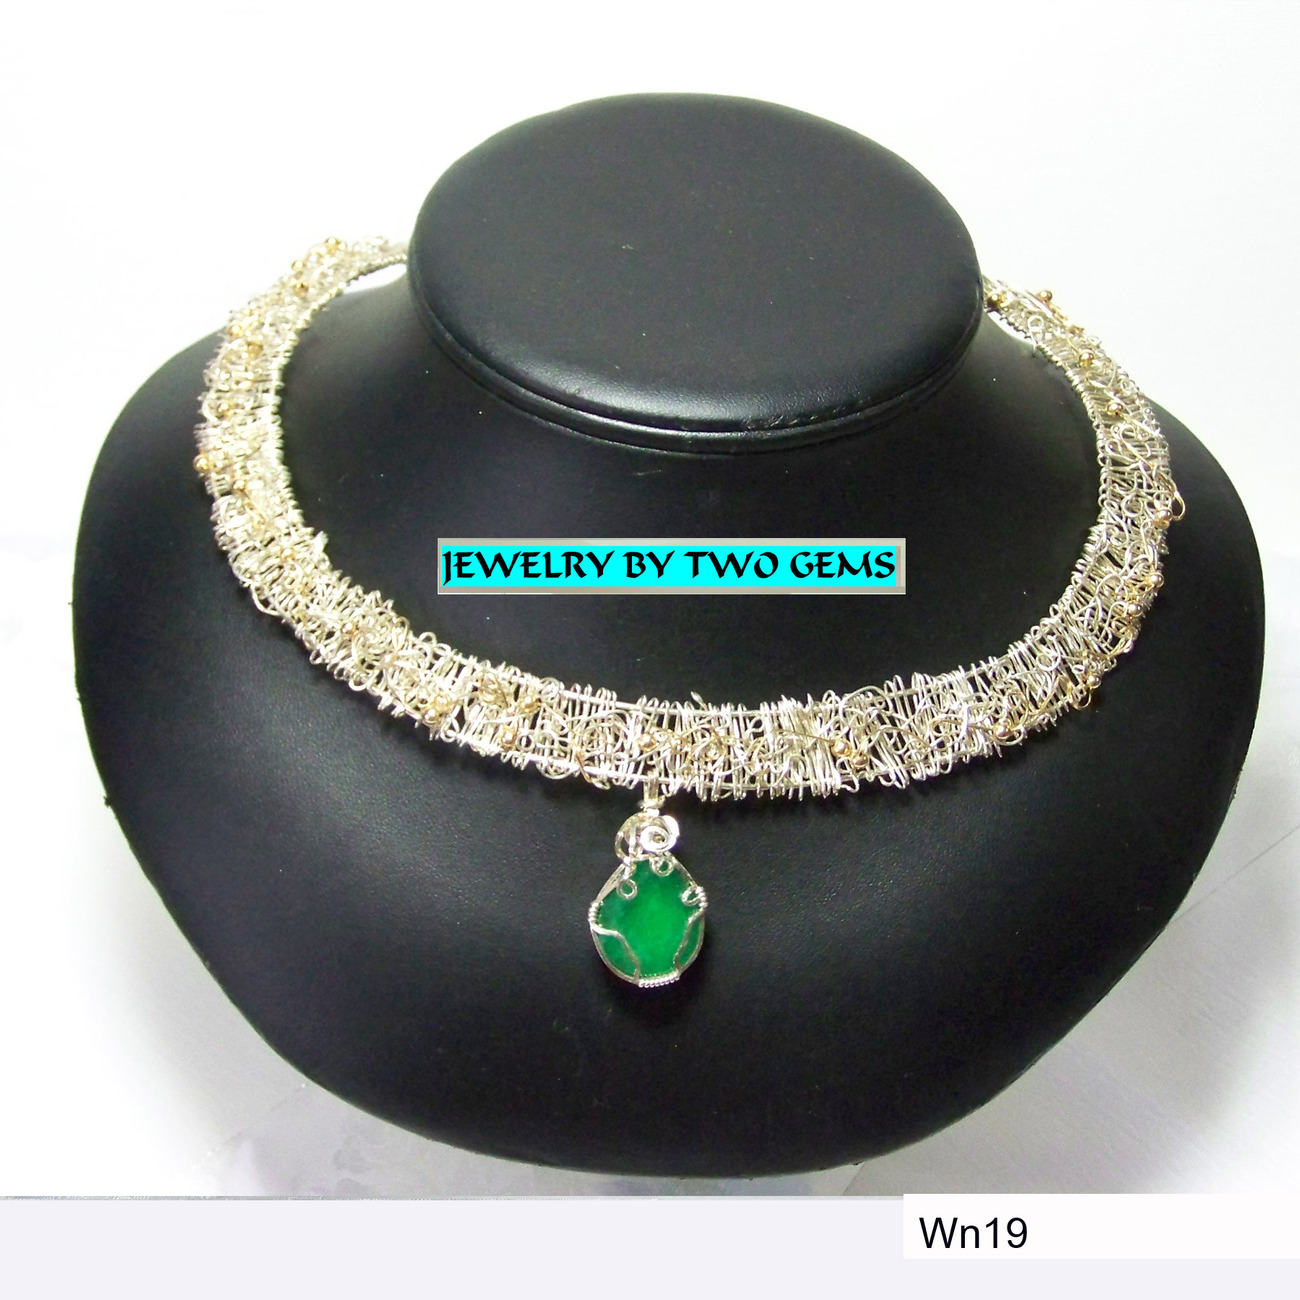 Jewery By Two Gems (Wn19) Sterling Silver/14k Gold Filled Collar w  Aventurine